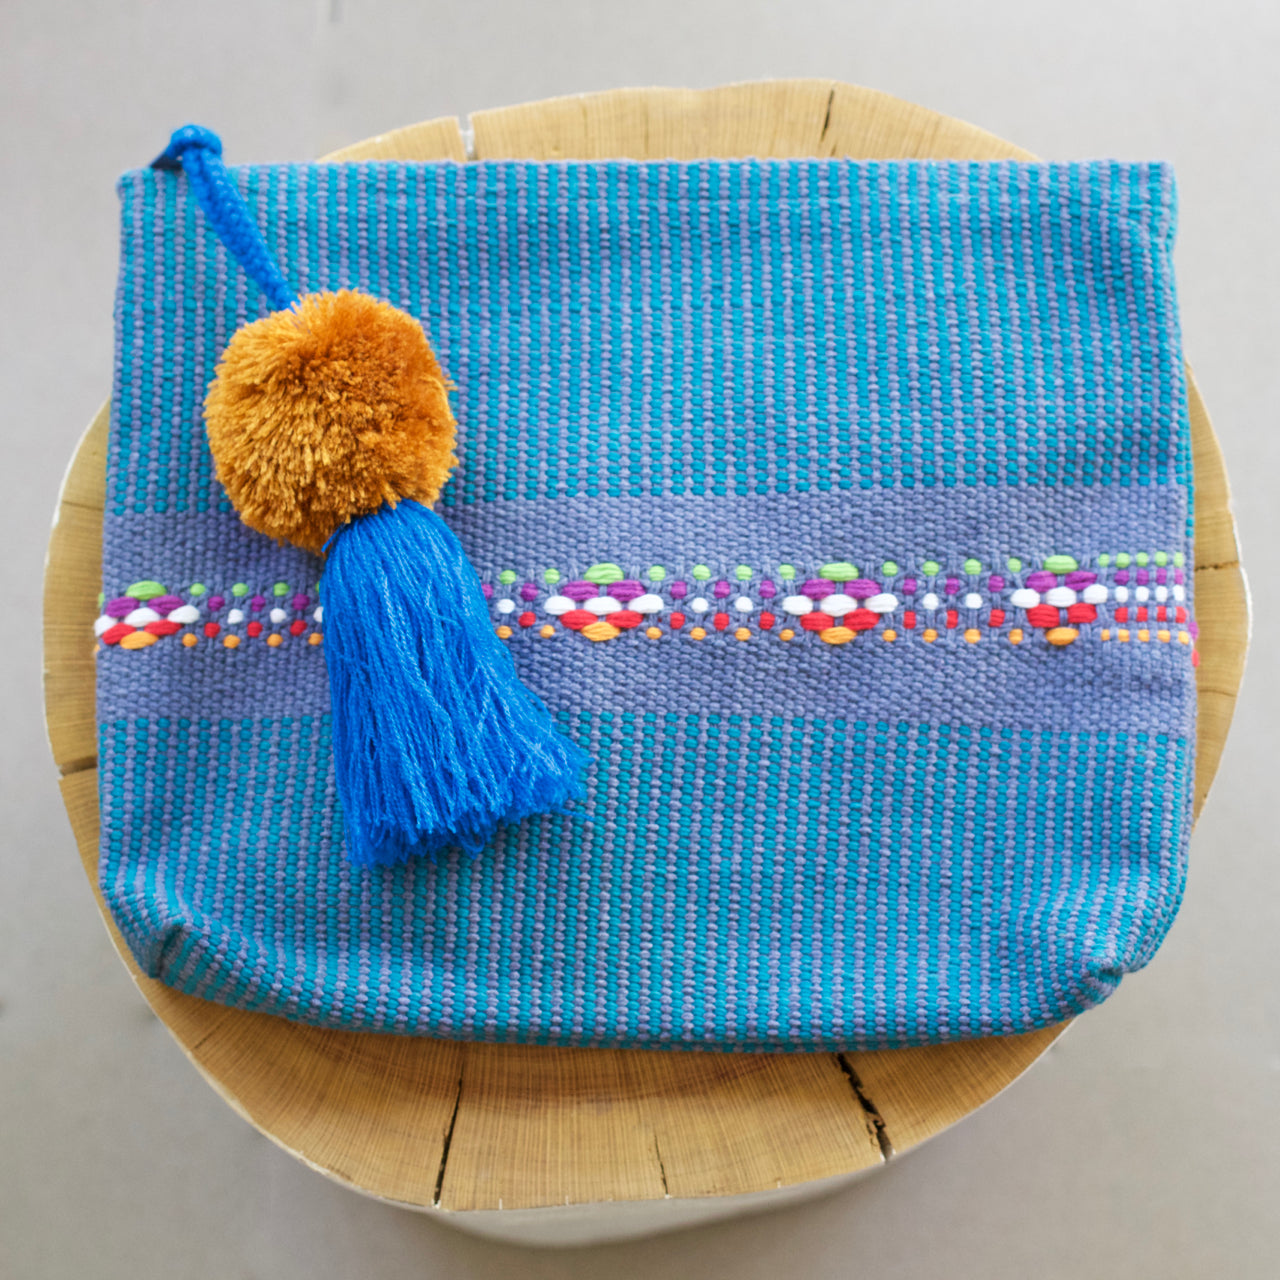 Jalieza Striped Clutch 12  Clutch Blue - Cielo Collective handmade Mexico Guatemala